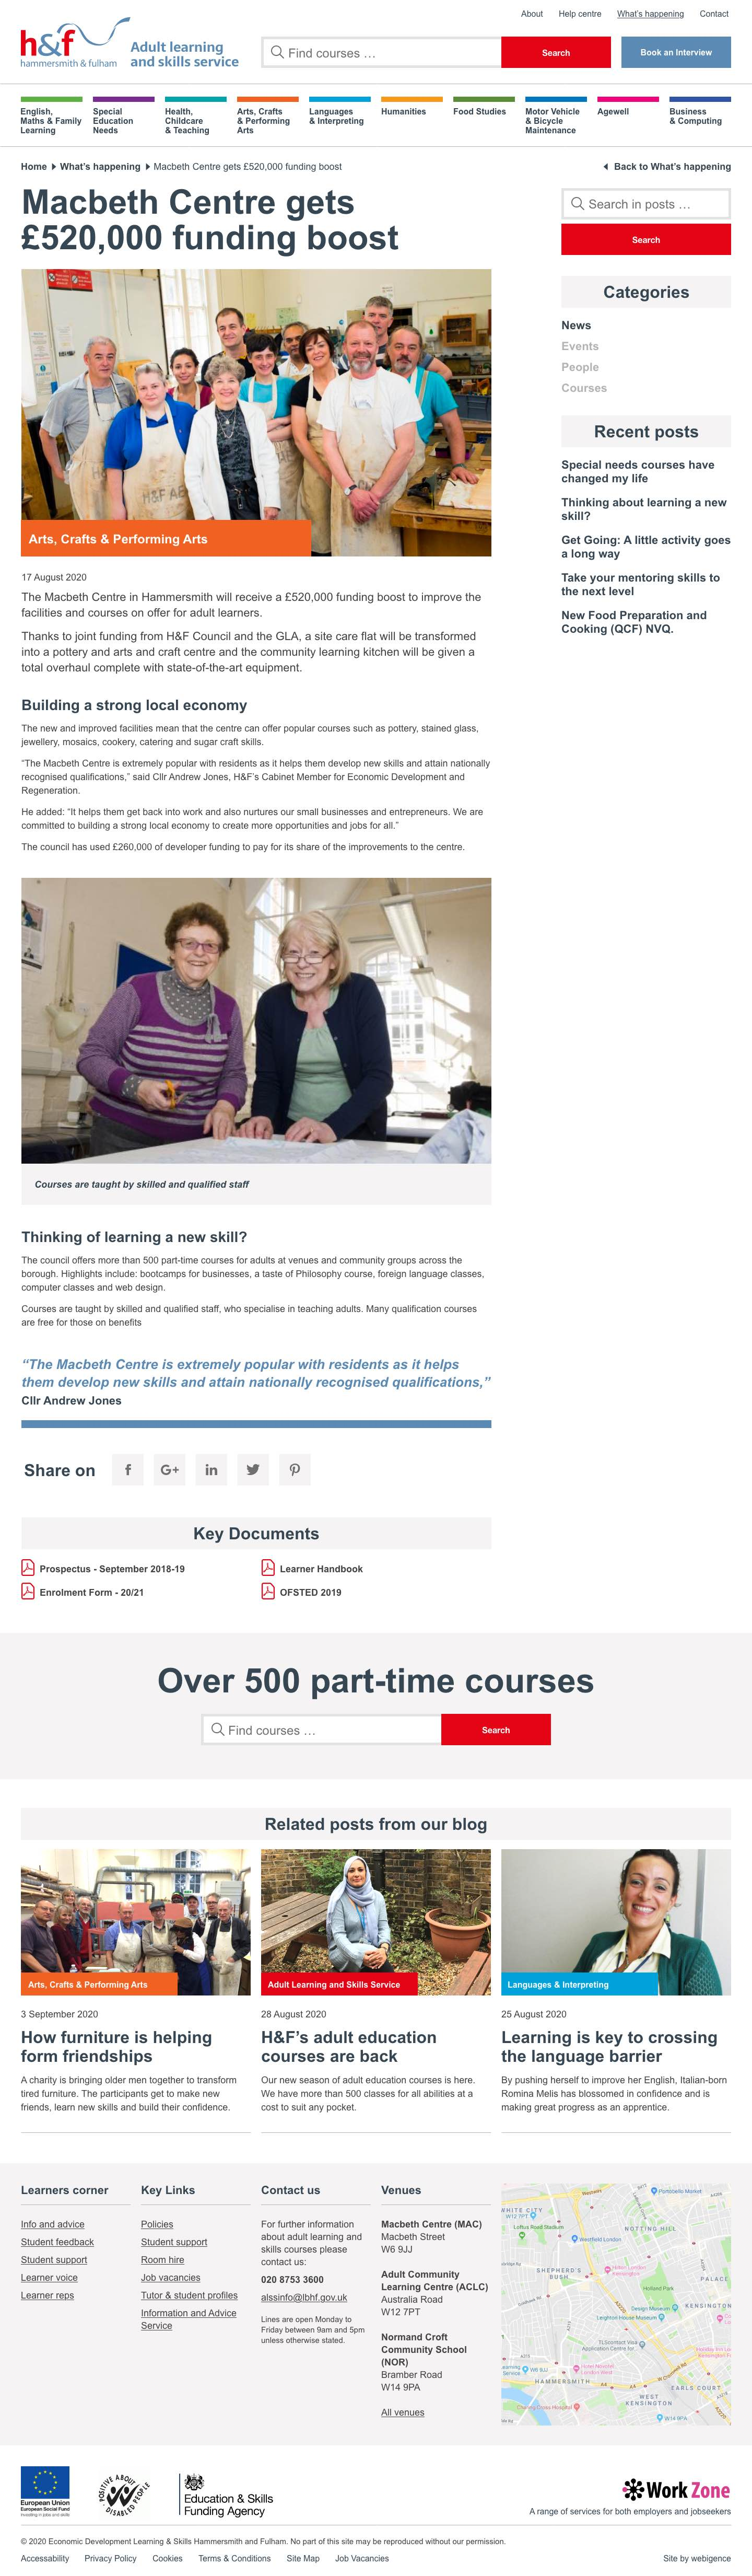 Hammersmith & Fulham Adult learning news post